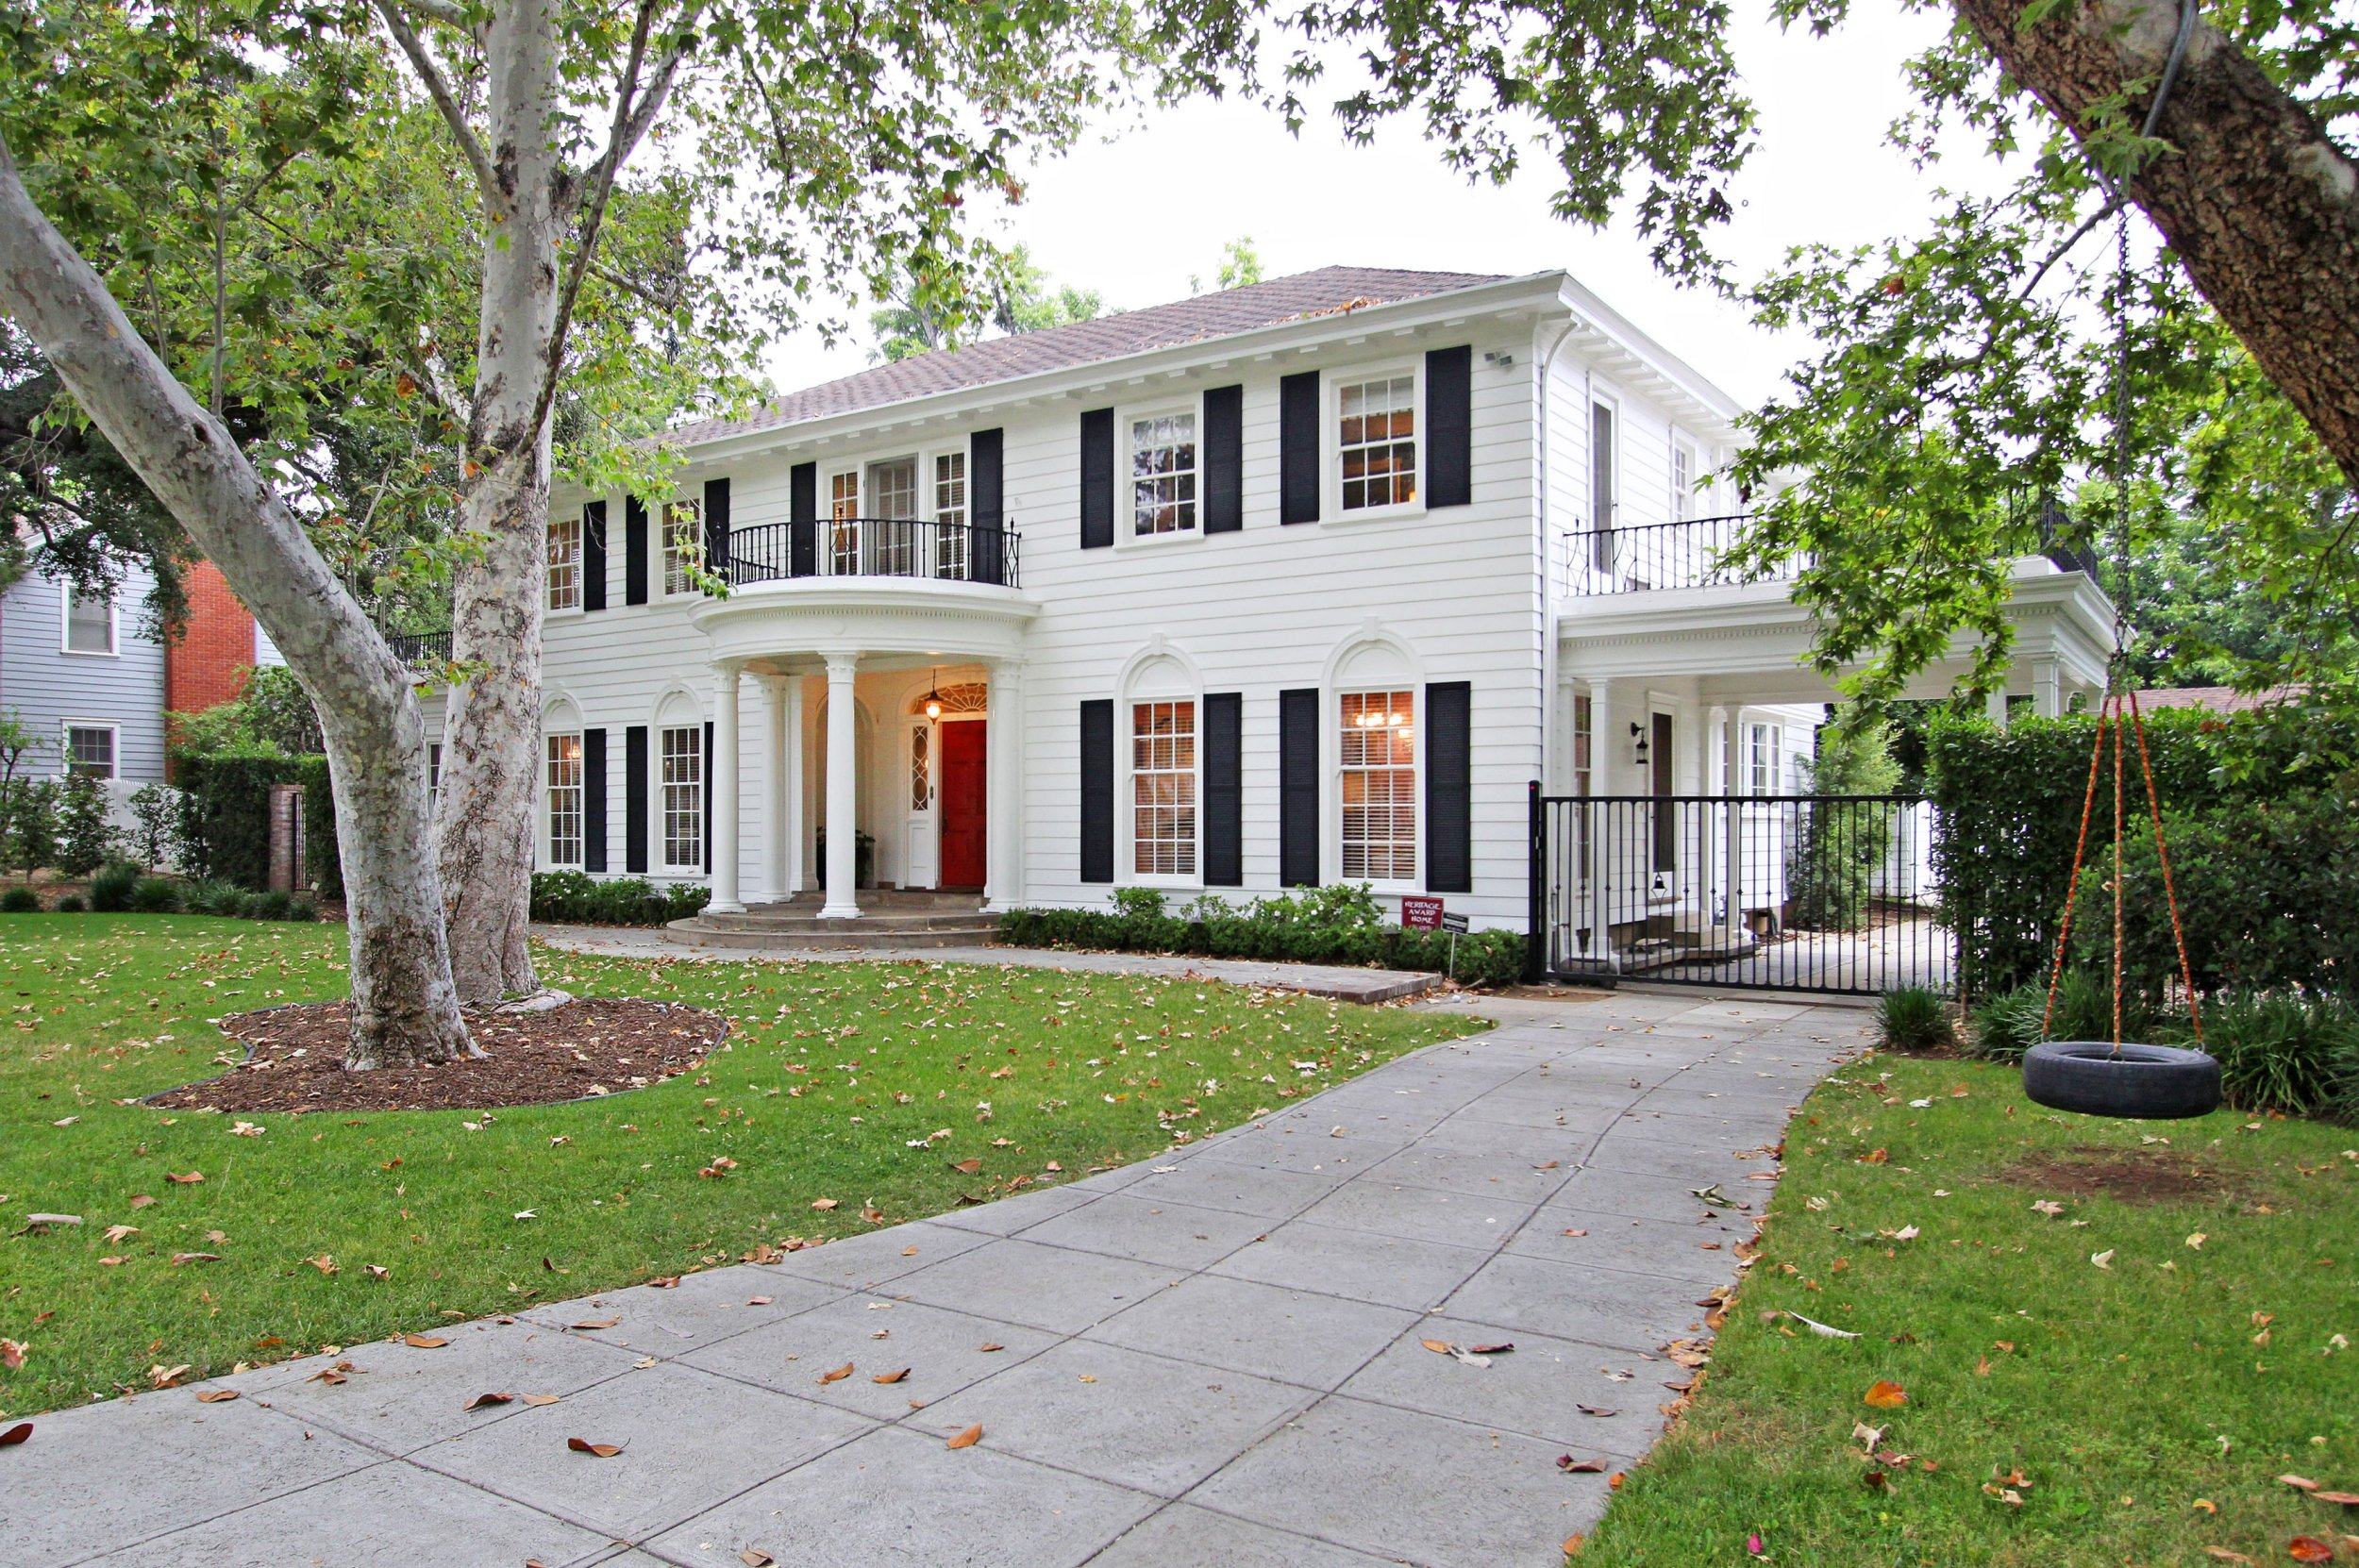 PIC BY SARA LAUDER / CATERS NEWS - (PICTURED: Front ) - The beautiful colonial home featured in hit 90s flick Father of the Bride starring Steve Martin and Diane Keaton is on sale for .99M (1.4M). Movie buffs will recognise the back garden from wedding scenes in the film, as well as the side yard where George Banks plays basketball with his daughter on the eve of the wedding. The stunning home in Los Angeles, California, was also used in Guess Whos Coming For Dinner with Ashton Kutcher and Zoe Saldana. Totalling 4,397 square feet, the property has four bedrooms and four bathrooms and a 90 bottle wine fridge. SEE CATERS COPY